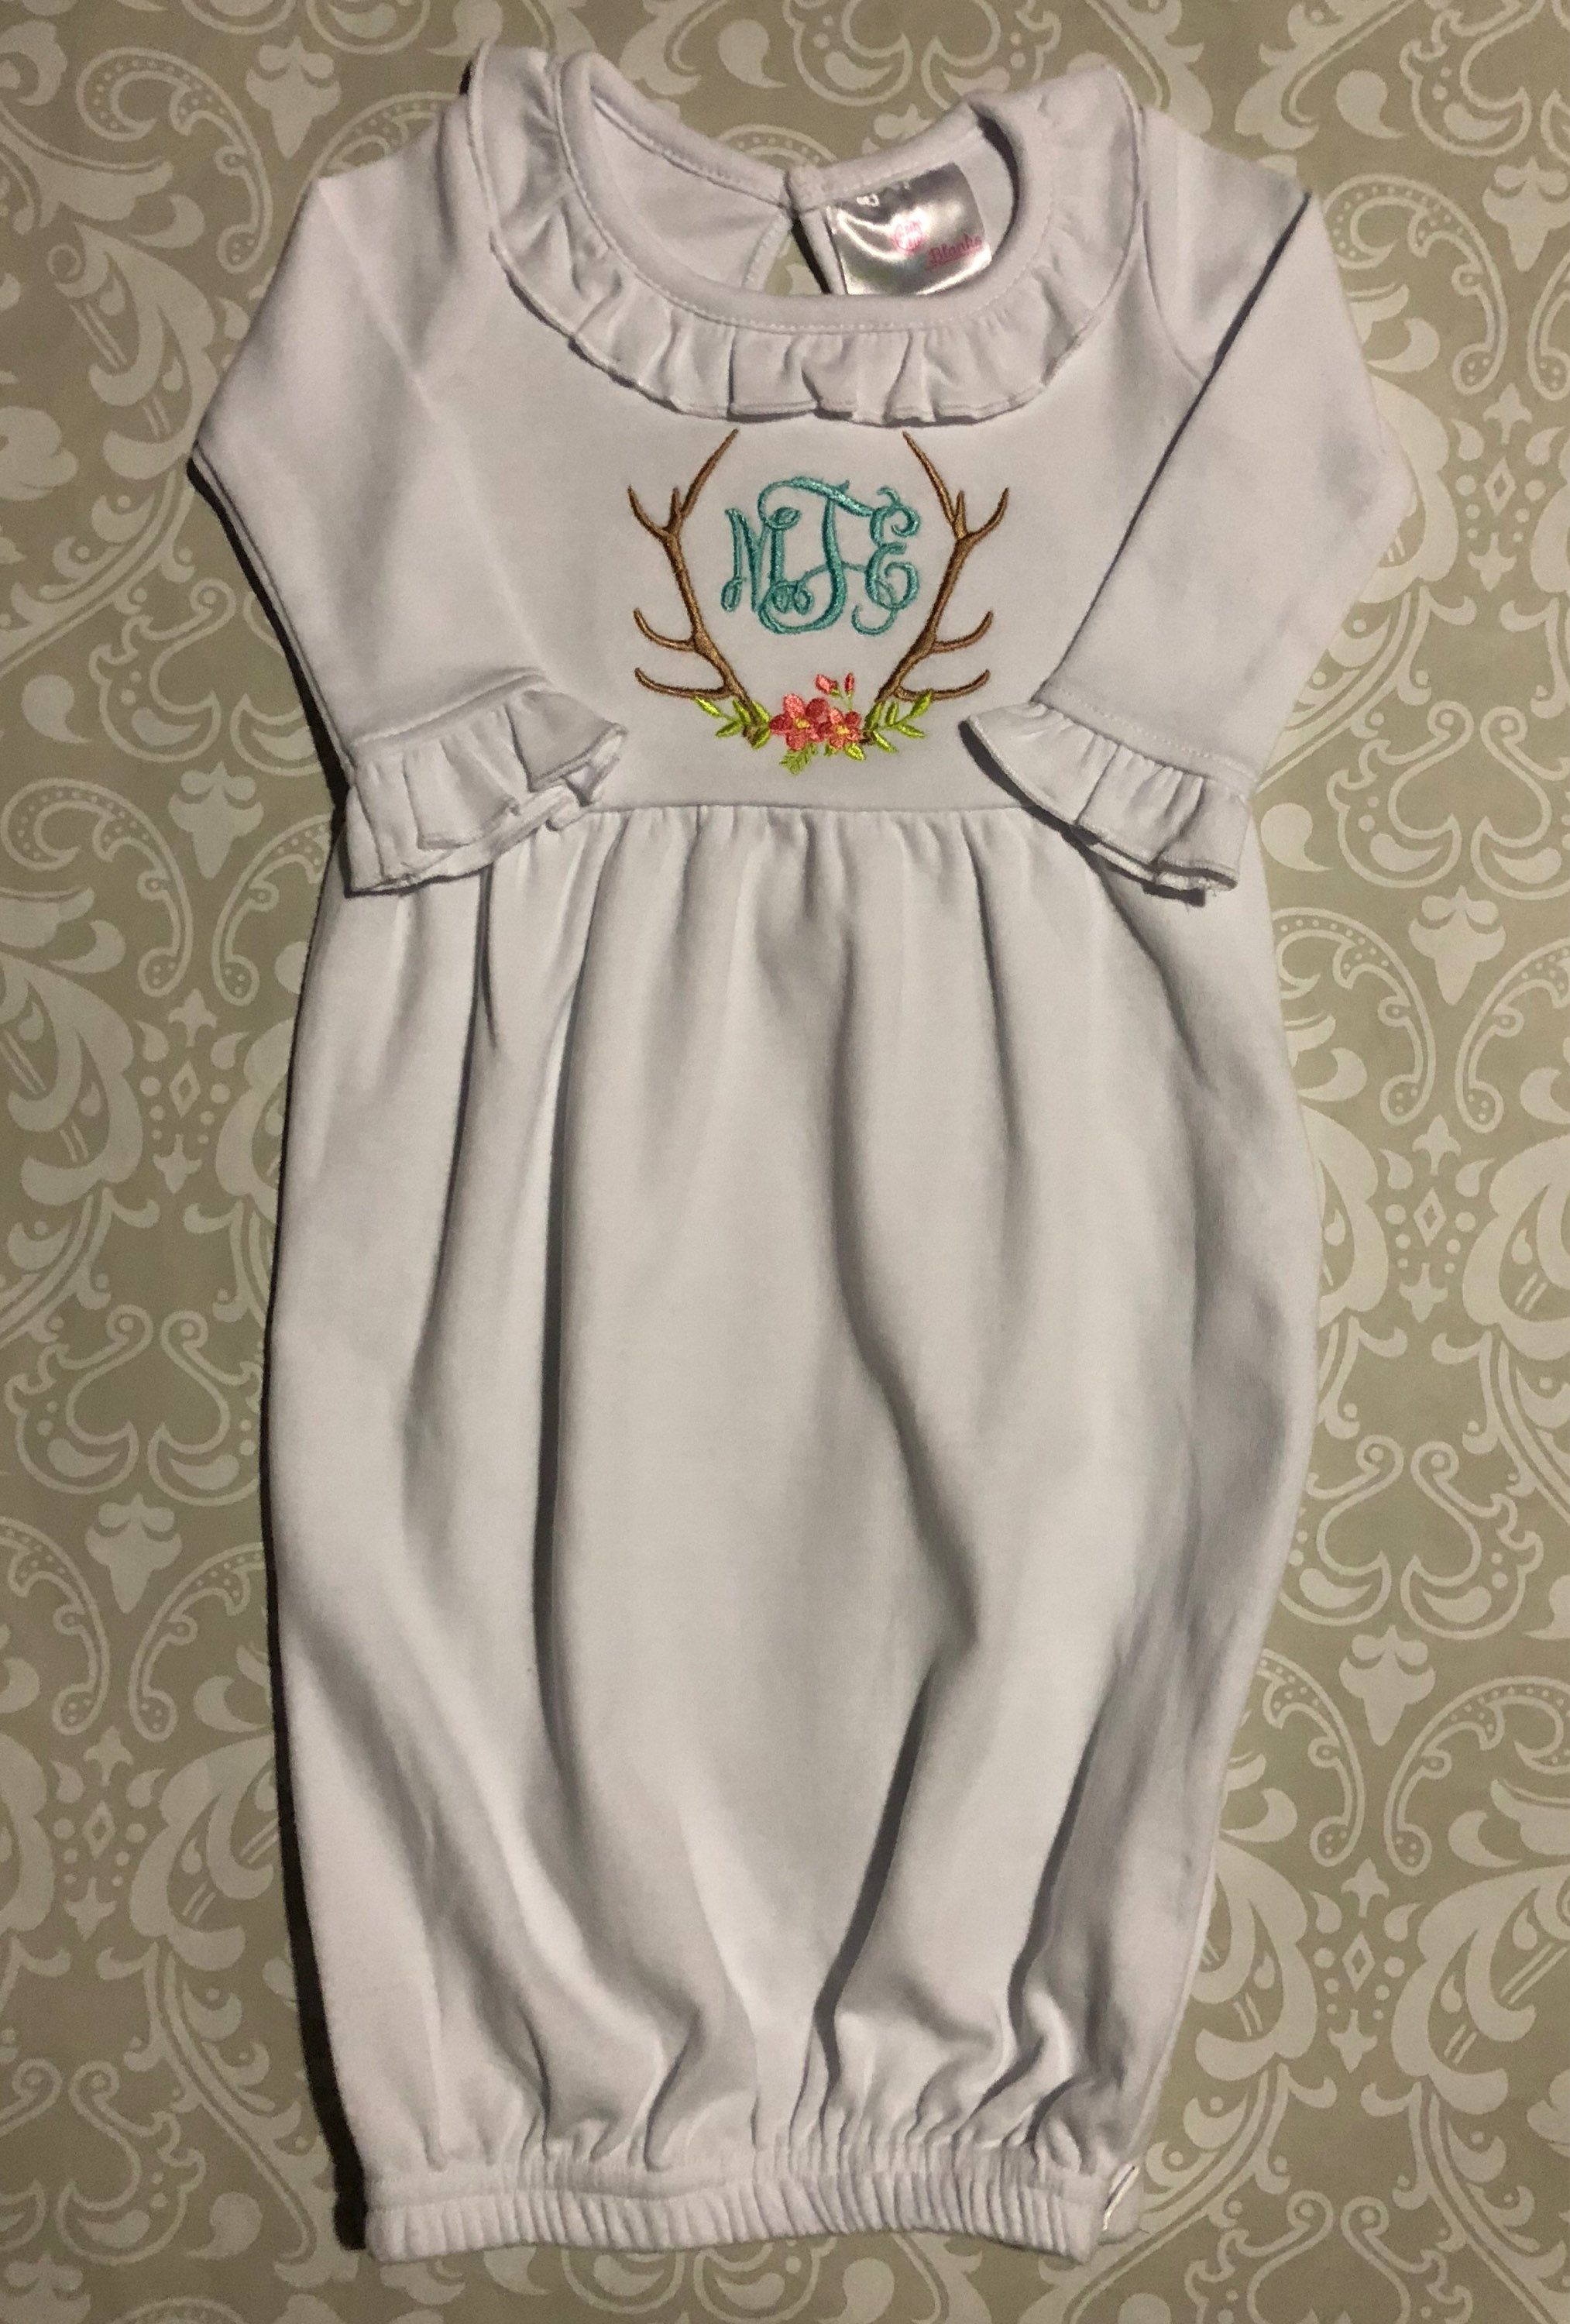 Monogram baby gown with antlers and flowers. Monogrammed baby girl ...